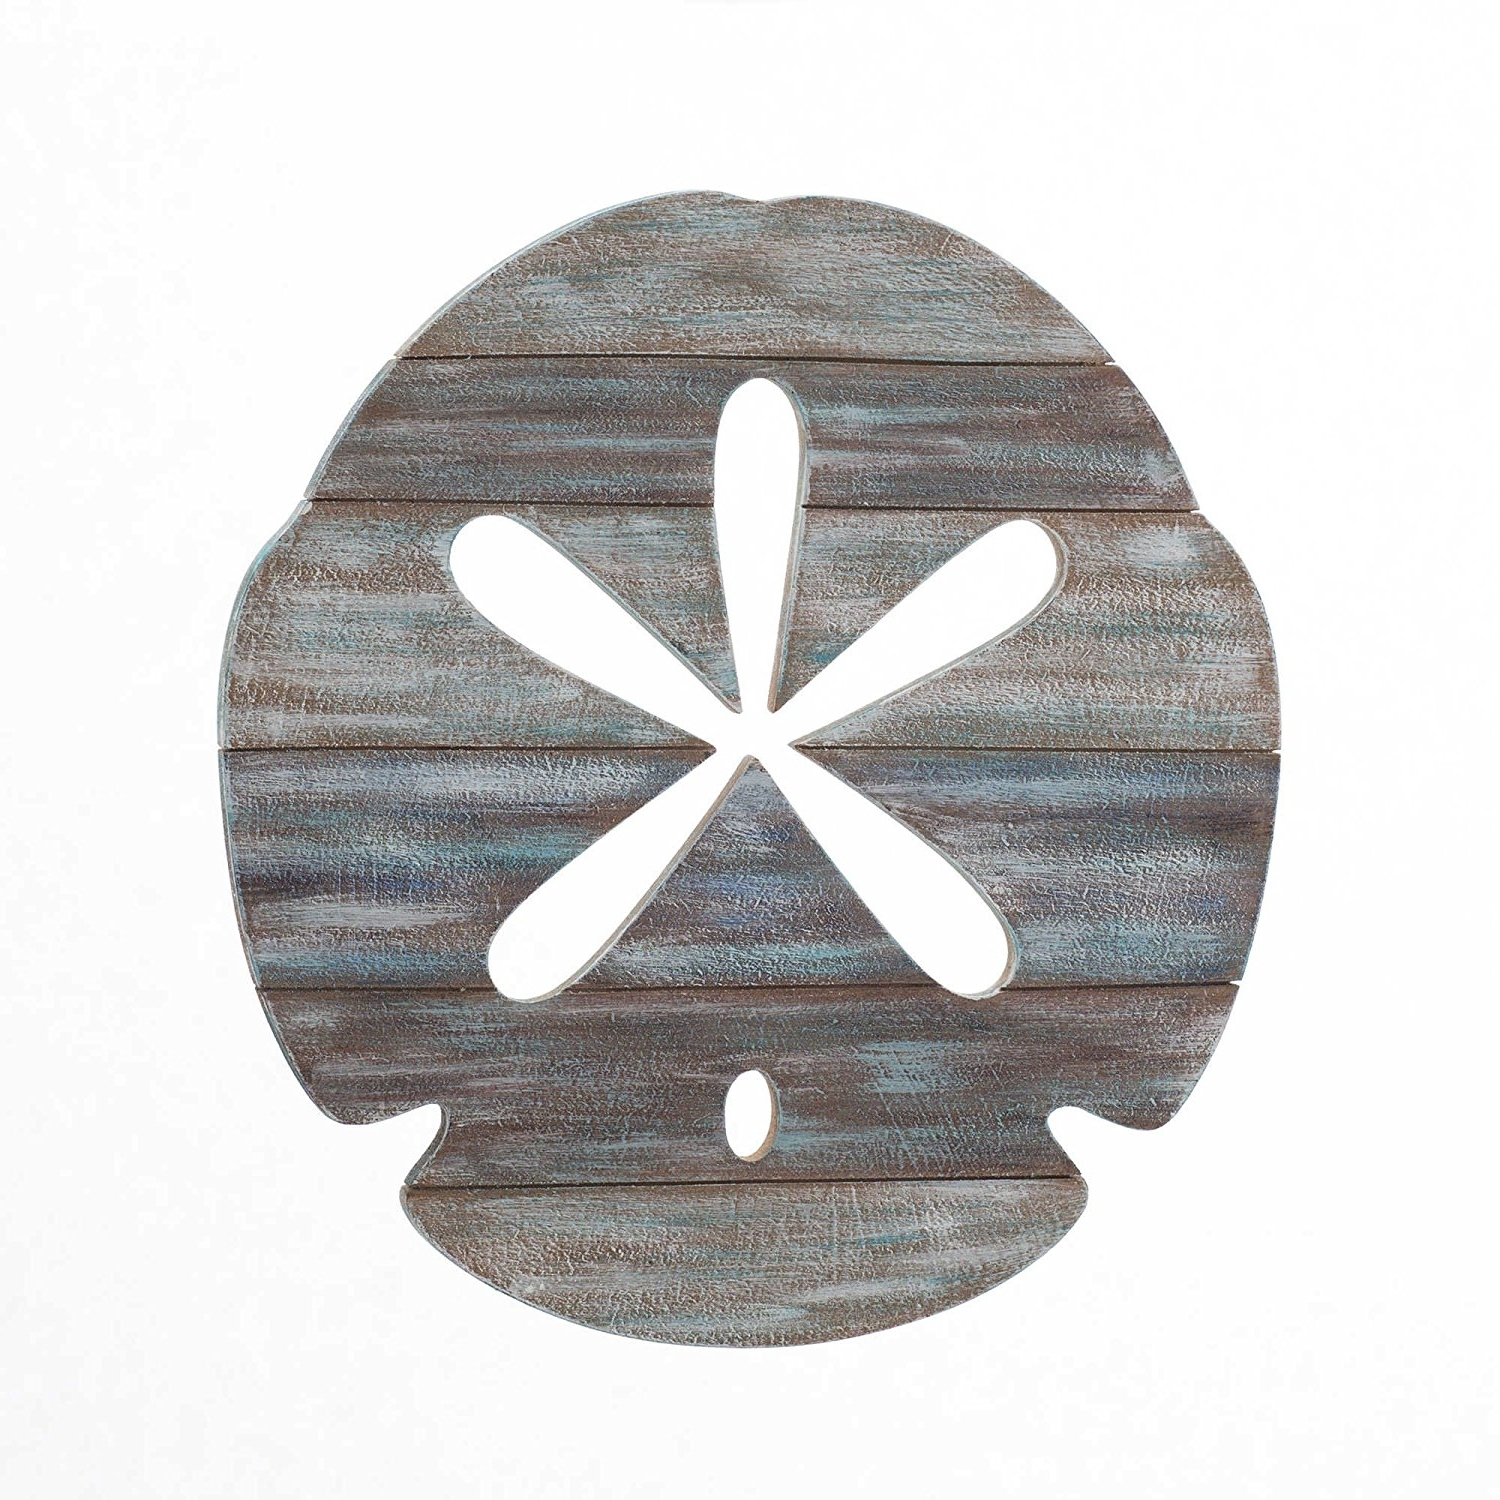 Sand Dollar Wall Art For Well Known Amazon: Sand Dollar Slatwood Panel Wall Art In Weathered Ivory (View 2 of 15)